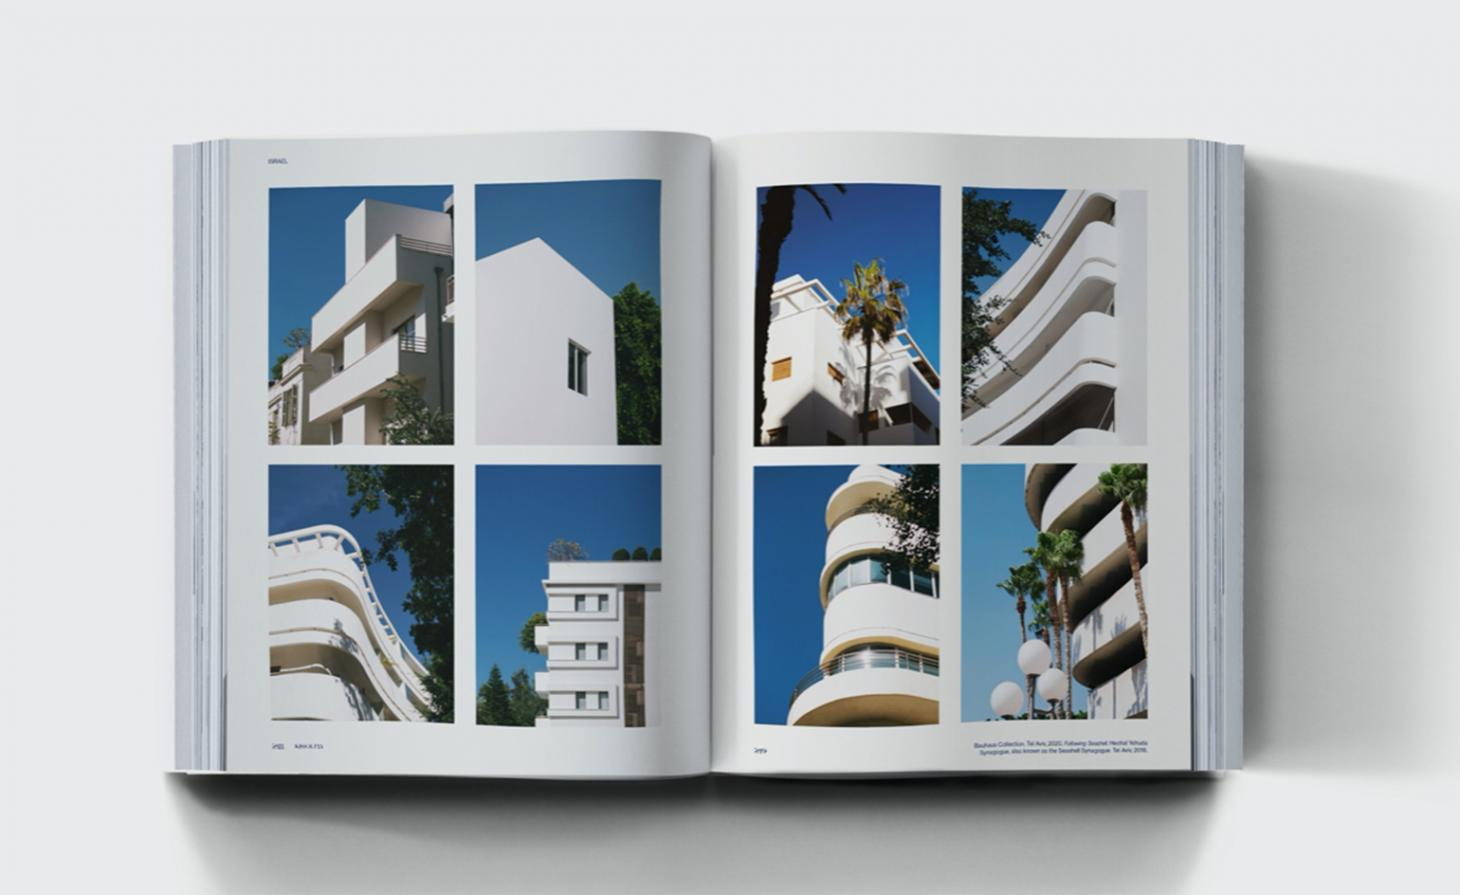 Pictures from the inside of kiss and fly augmented reality travel book, showing exterior of white building against blue sky